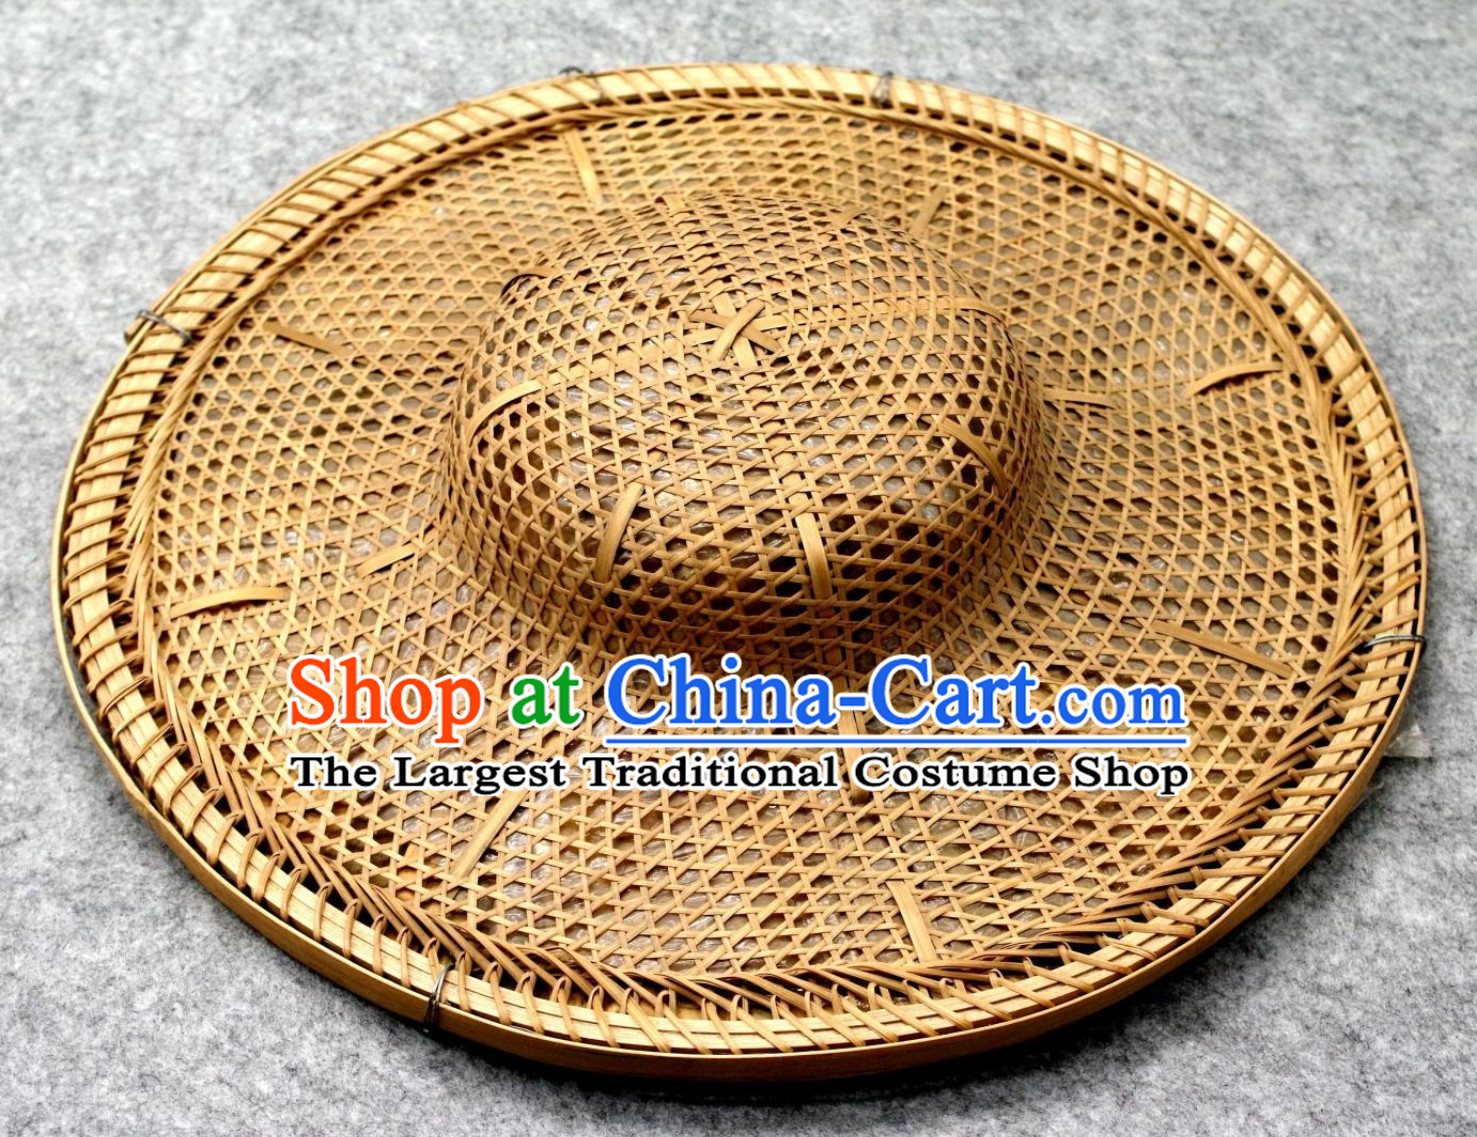 Top Chinese Classical Handmade Plain Straw Hat